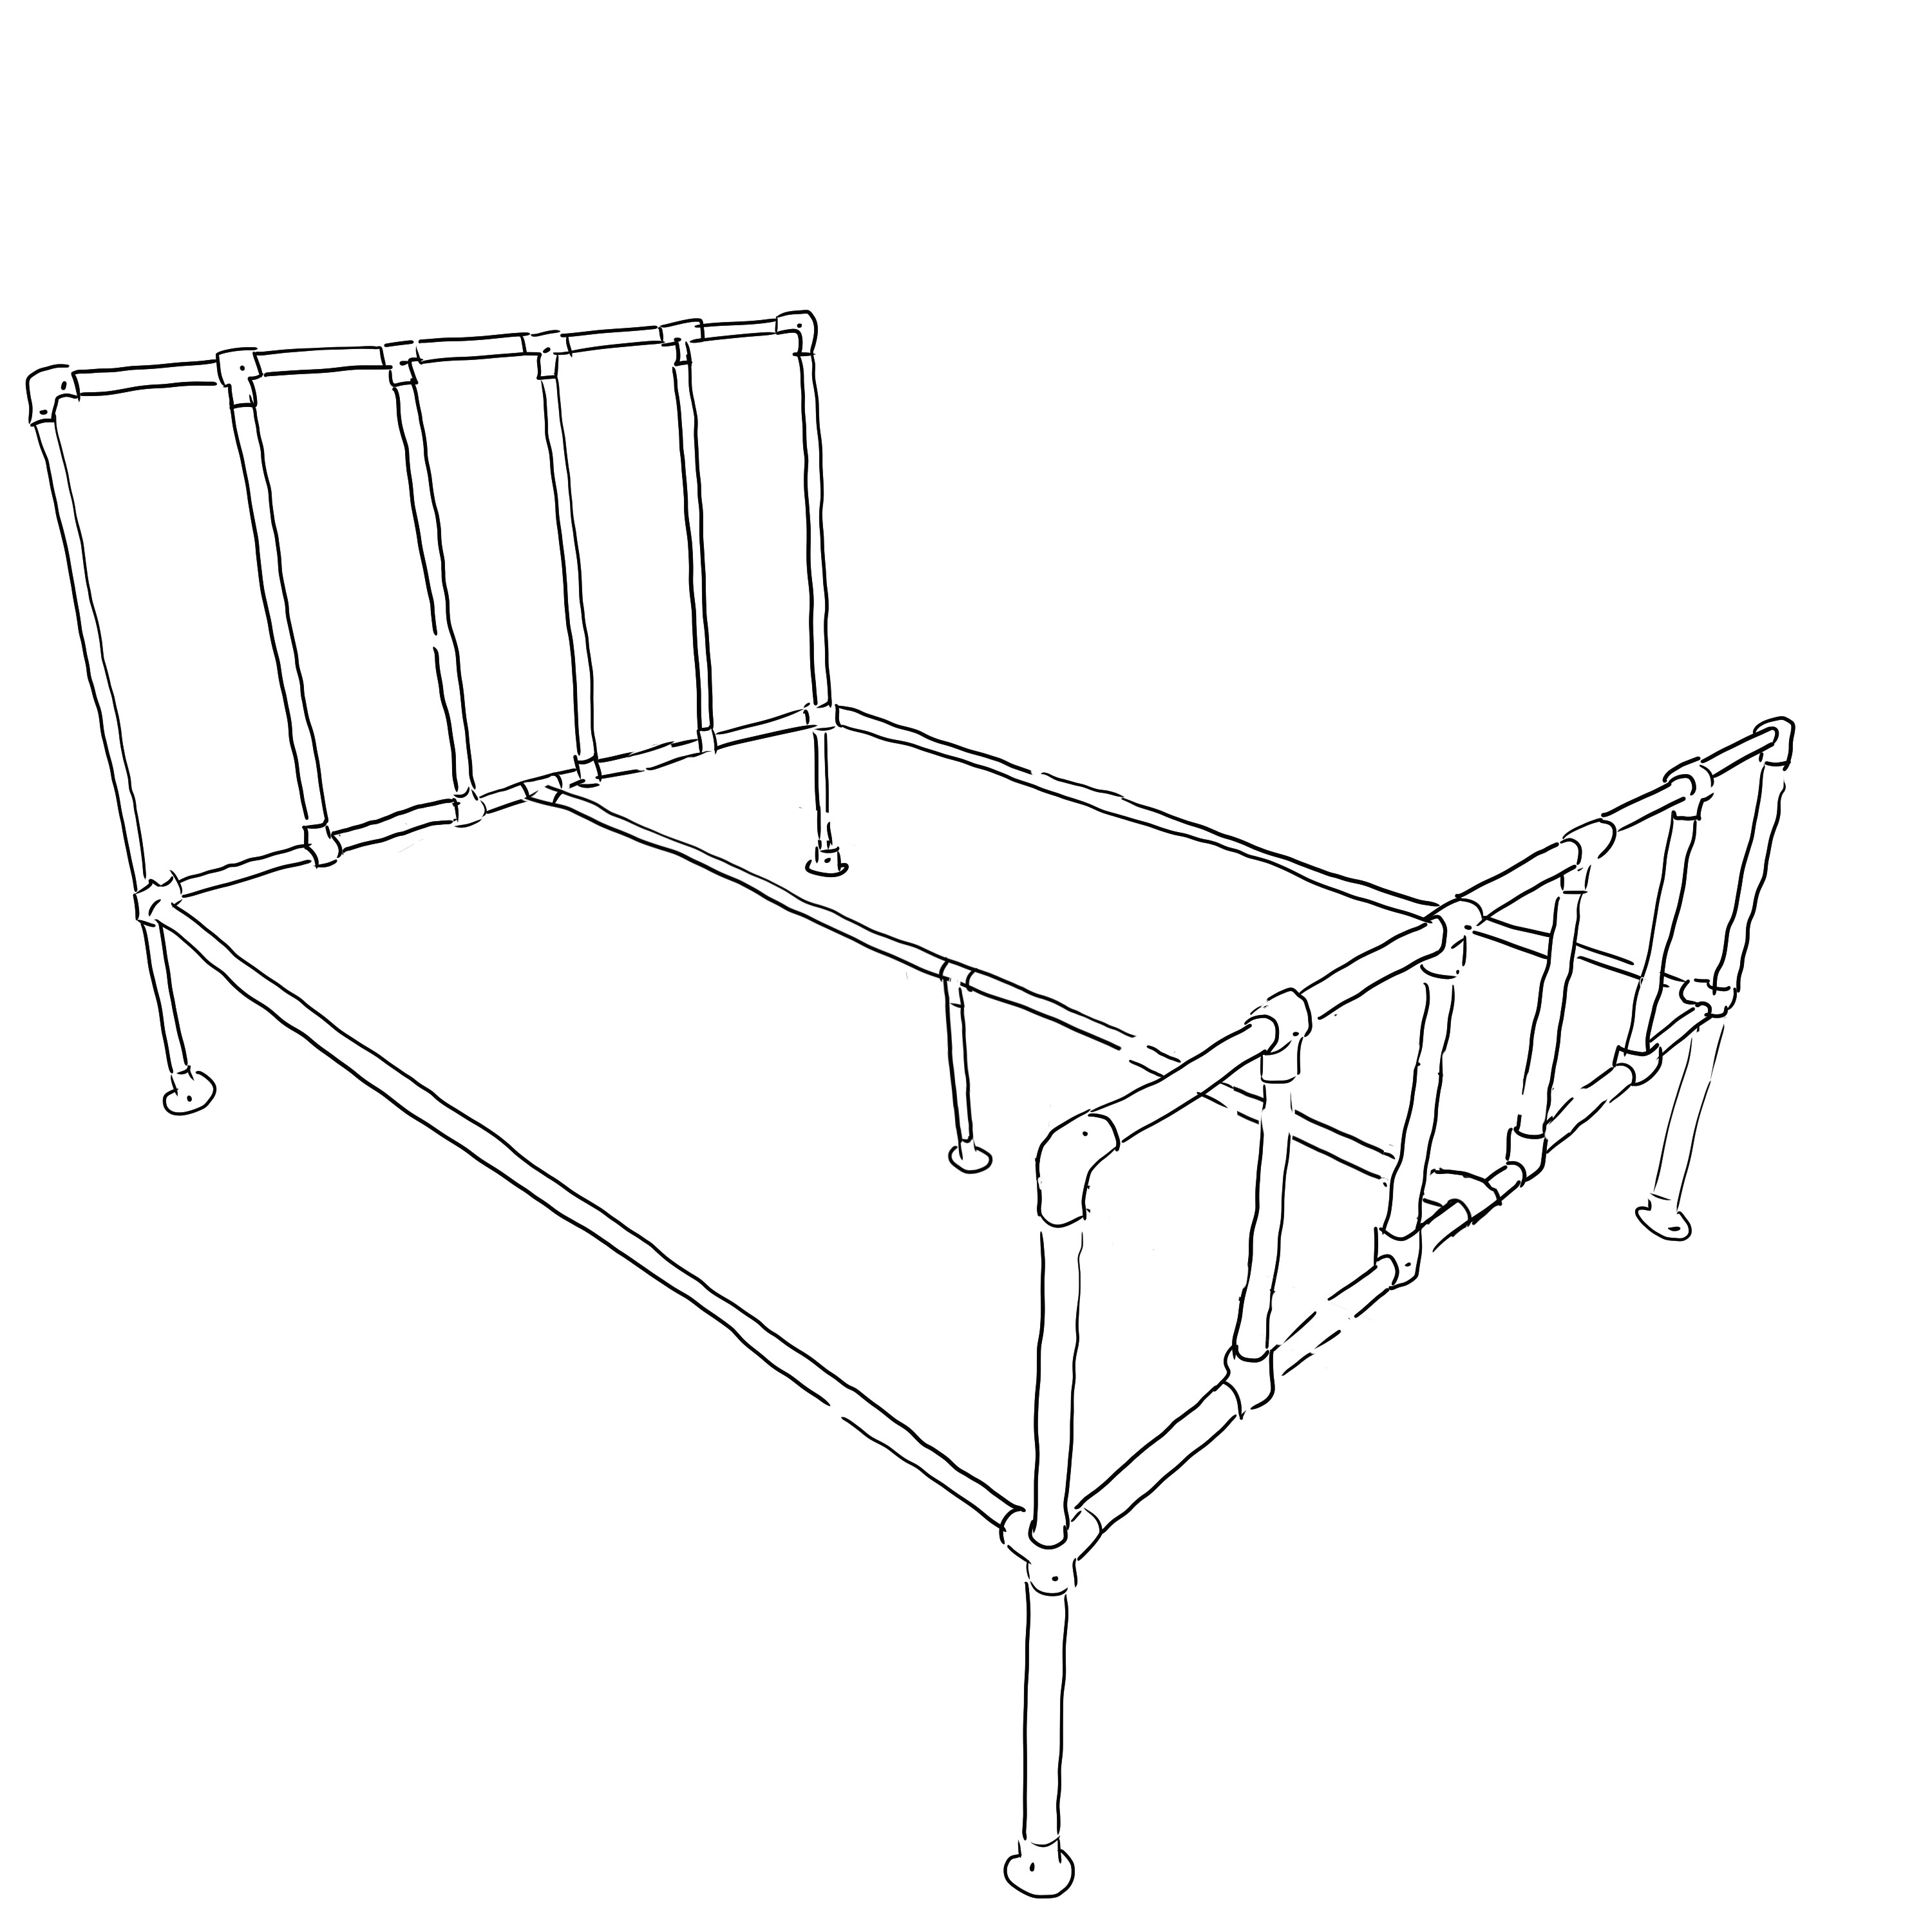 Camden industrial bed frame kit - Standard double